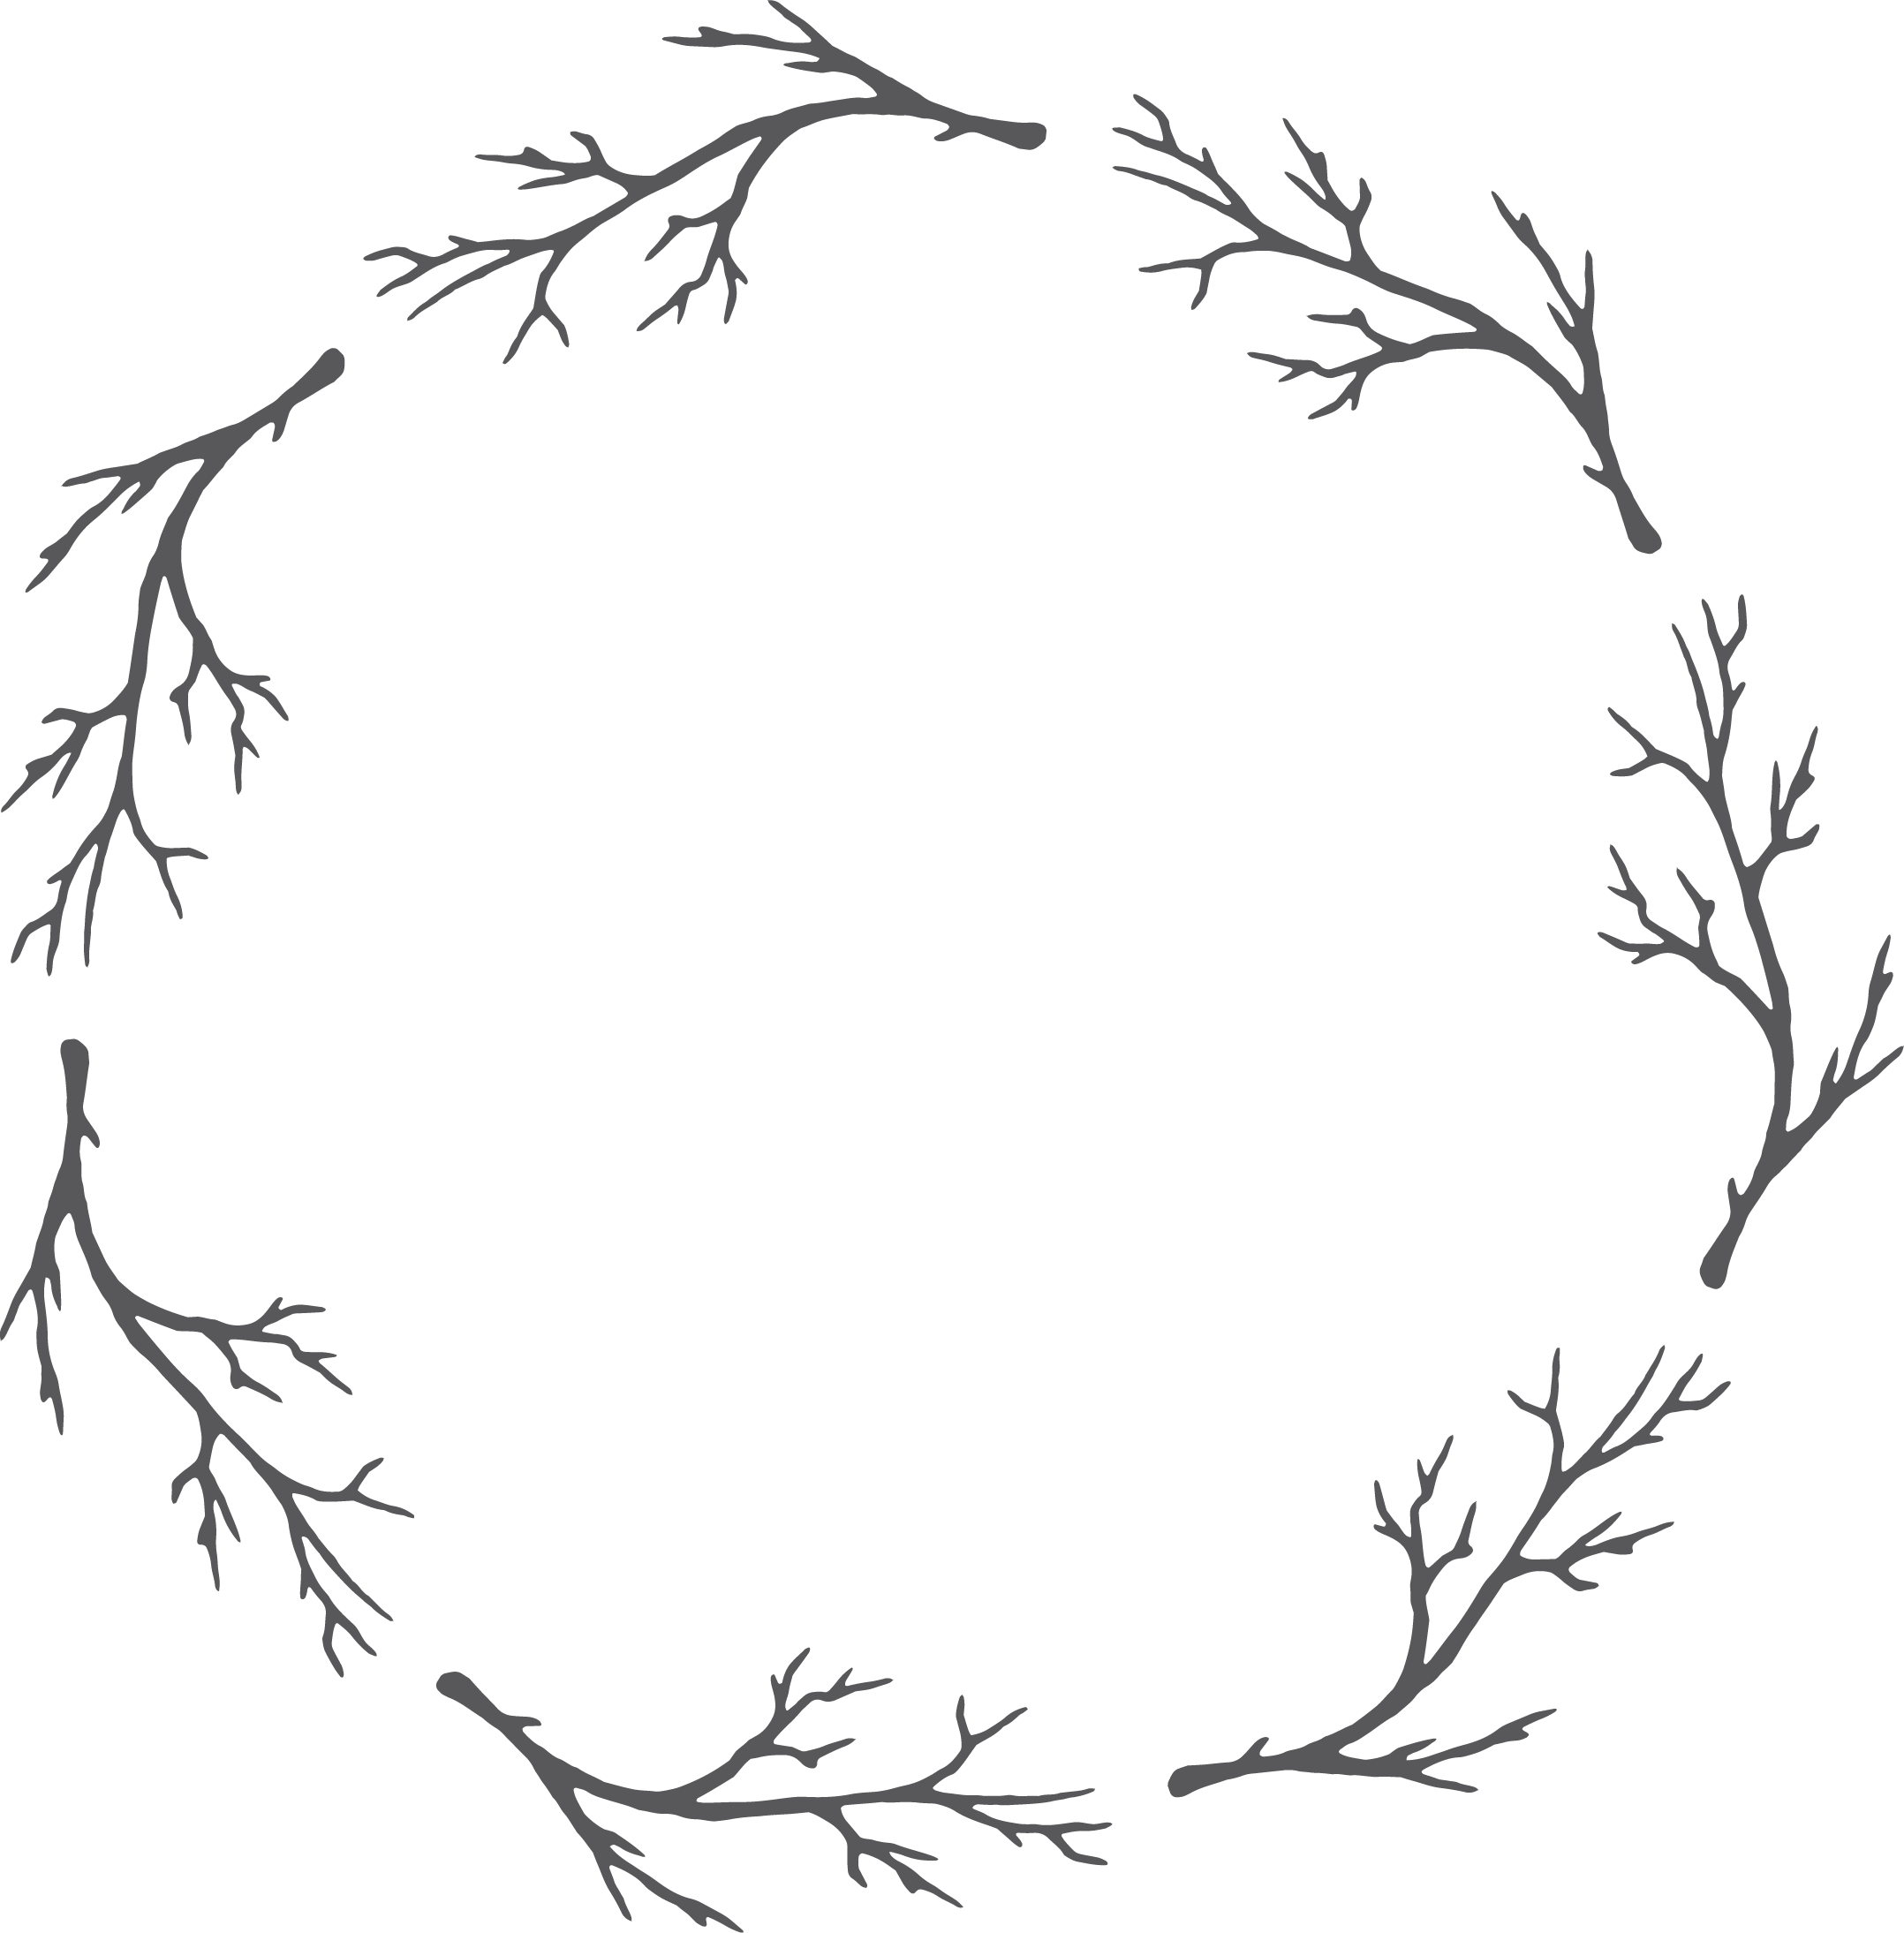 Garland clipart hand drawn. Black and white watercolor